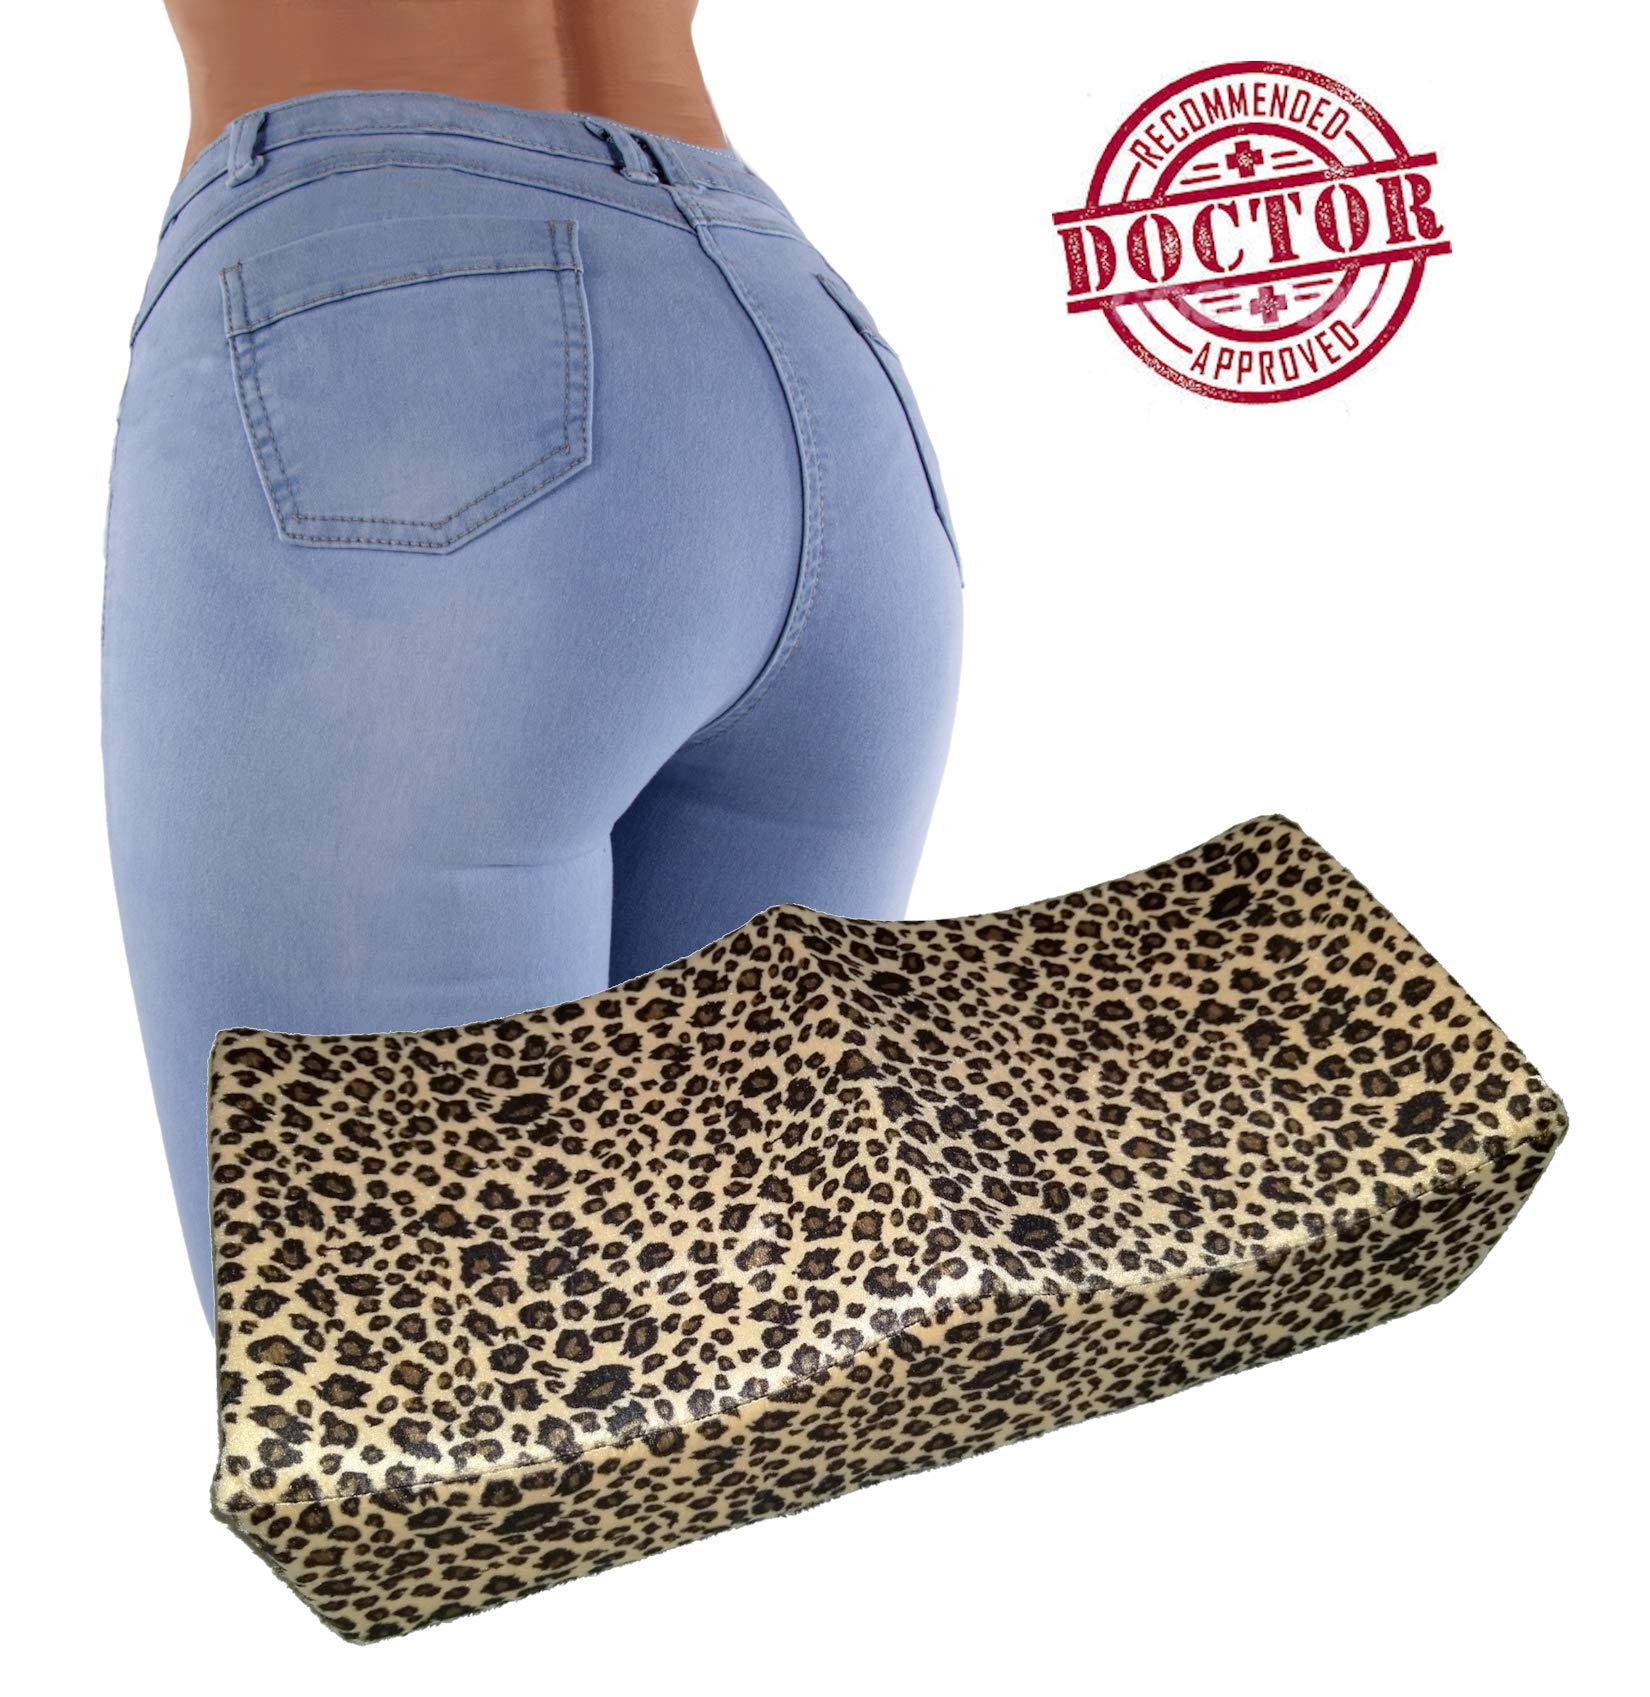 BBL Pillow - Brazilian Butt Lift Hard Foam Pillow with Booty Support Technology - Dr. Approved for Post Surgery Recovery Seat pressure offloading relief from pain area - Leopard Print cover BBL Pillow by CheckBox